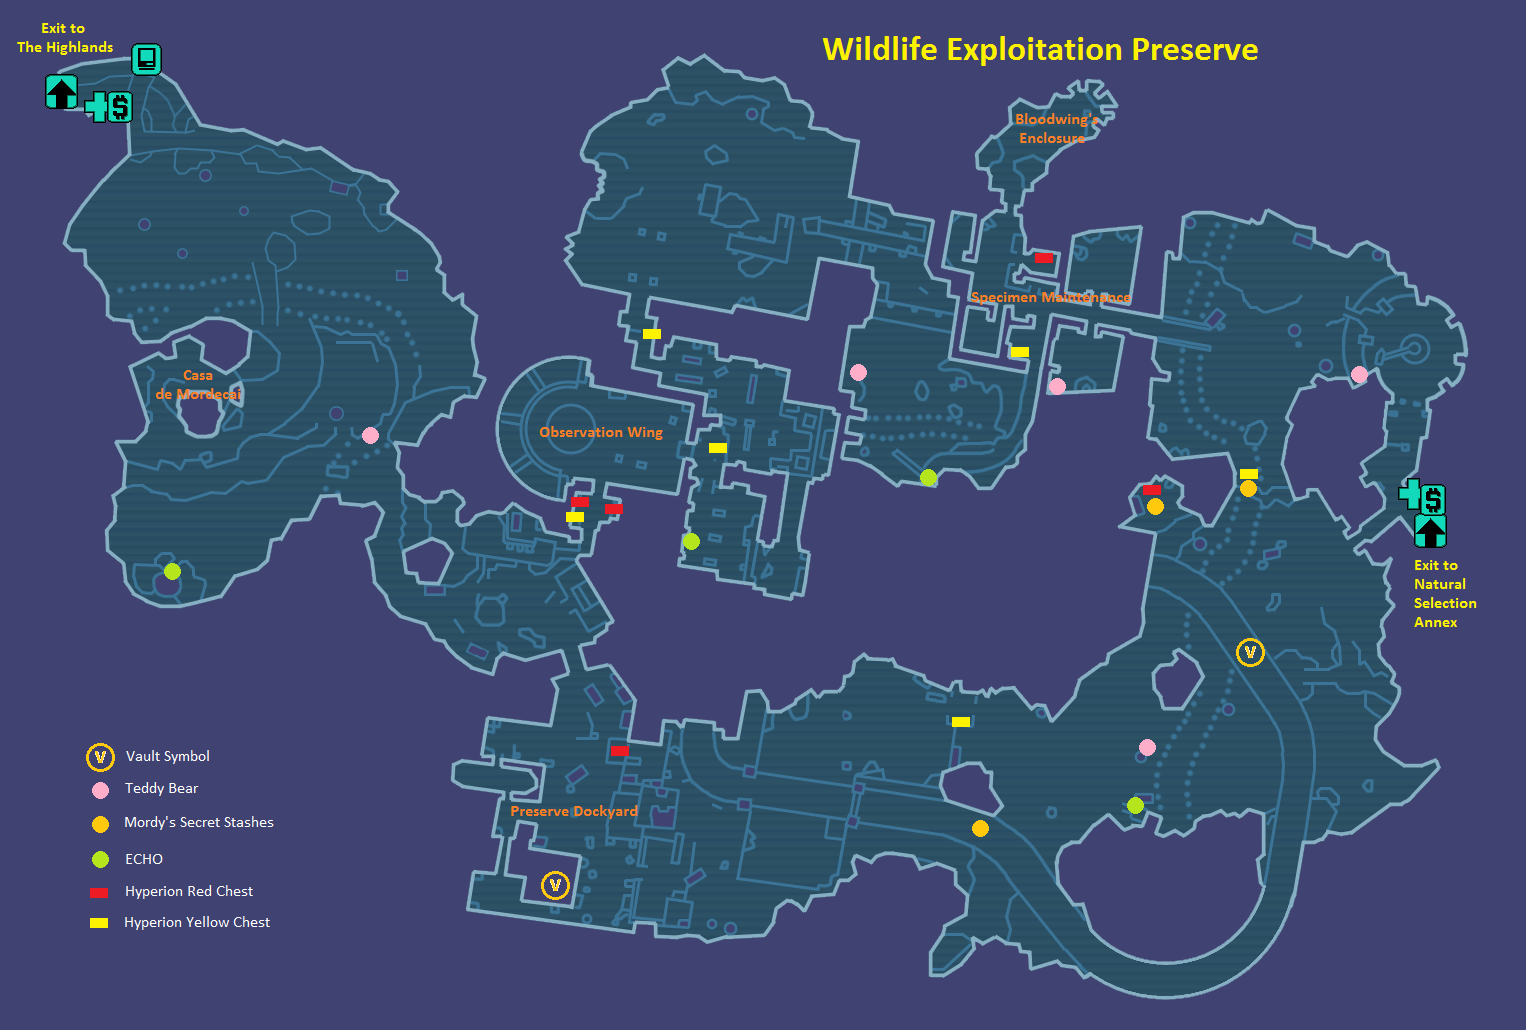 File:Wildlife Exploitation Preserve Map.png